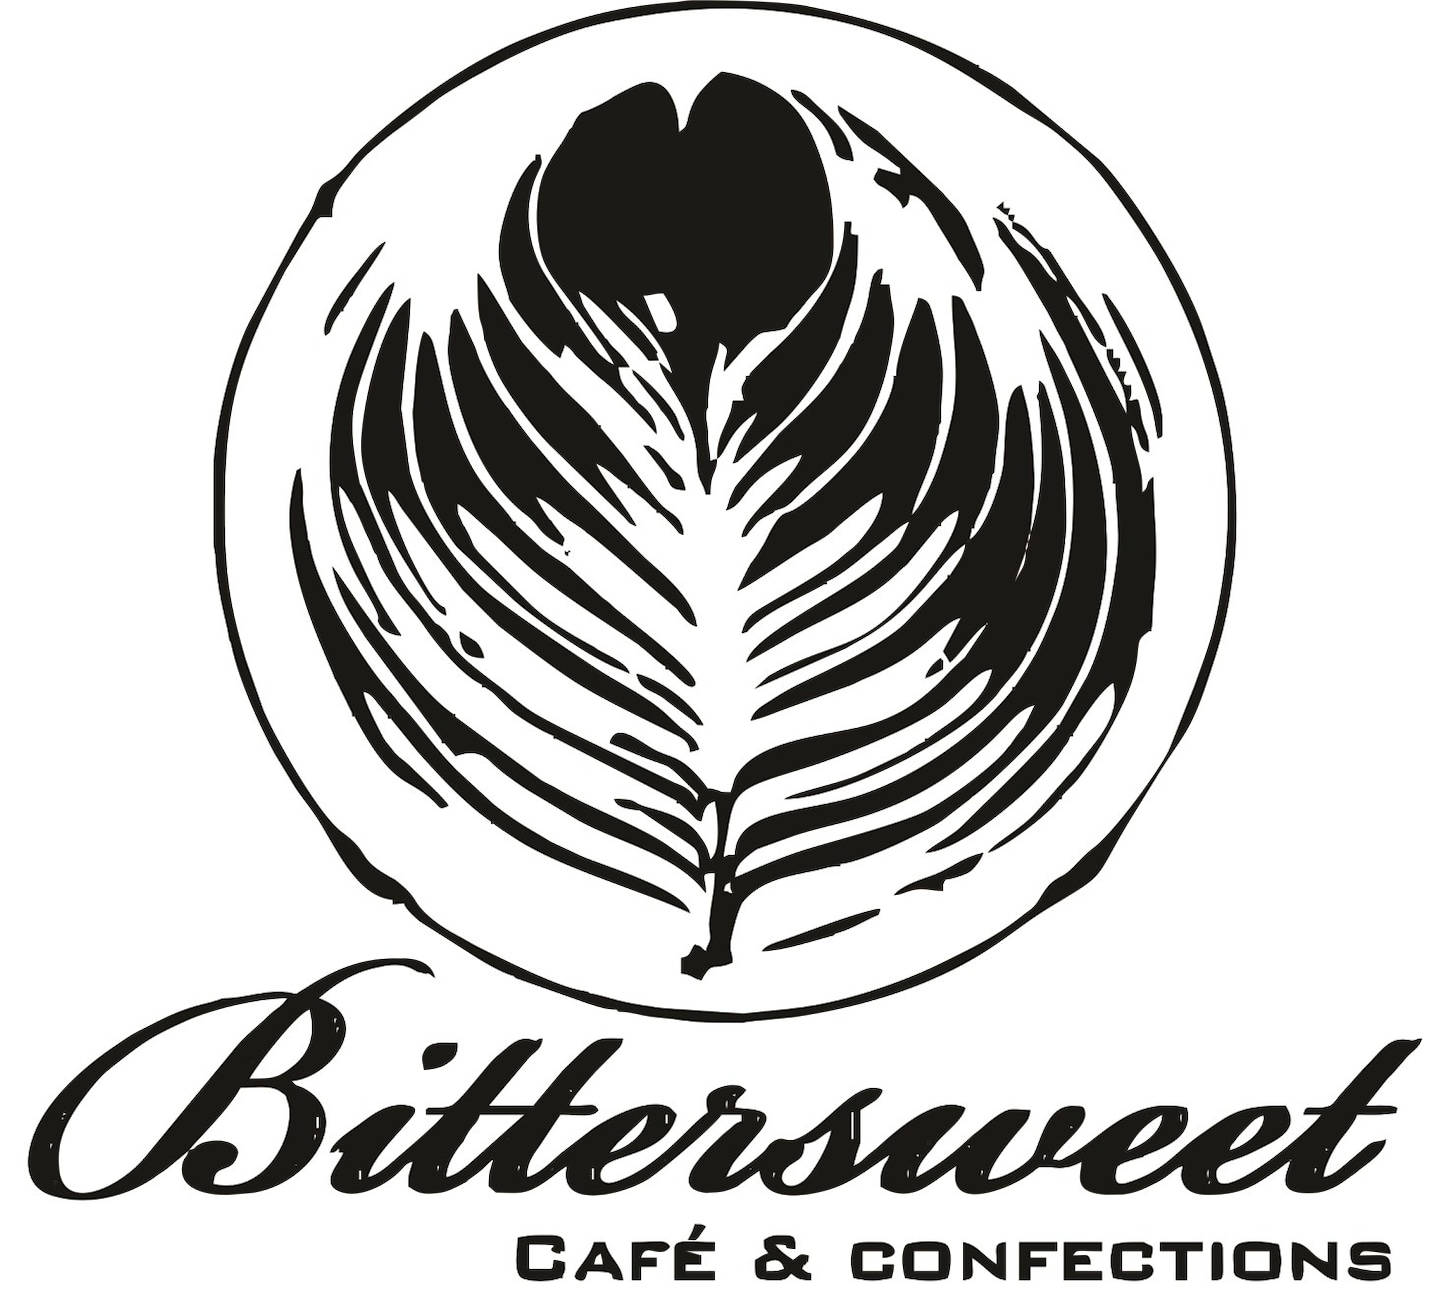 Bittersweet - Cafe & Confections